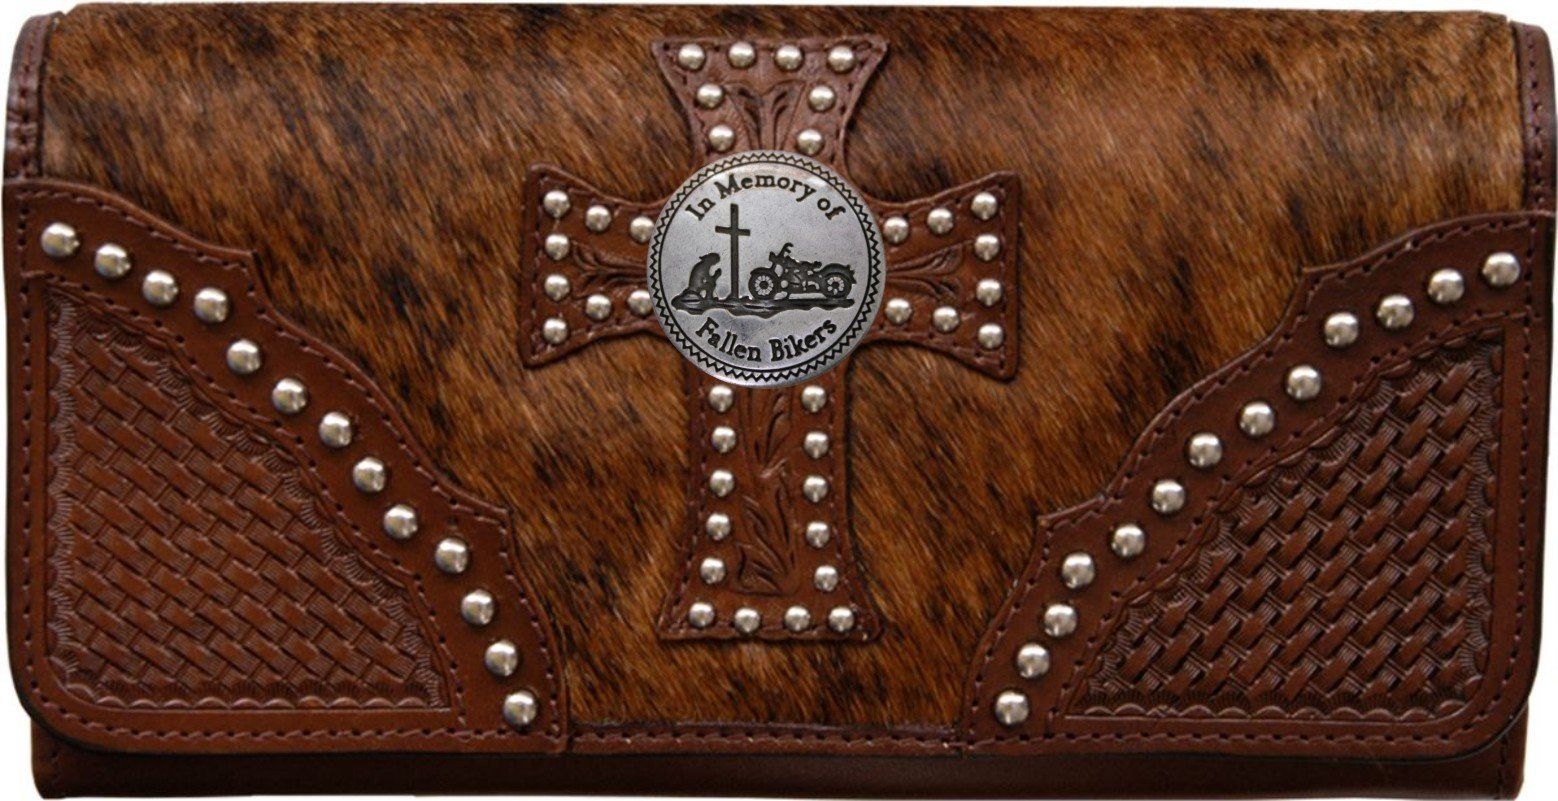 Custom Fallen Bikers Natural Hair Christian Clutch Wallet with removable checkbook